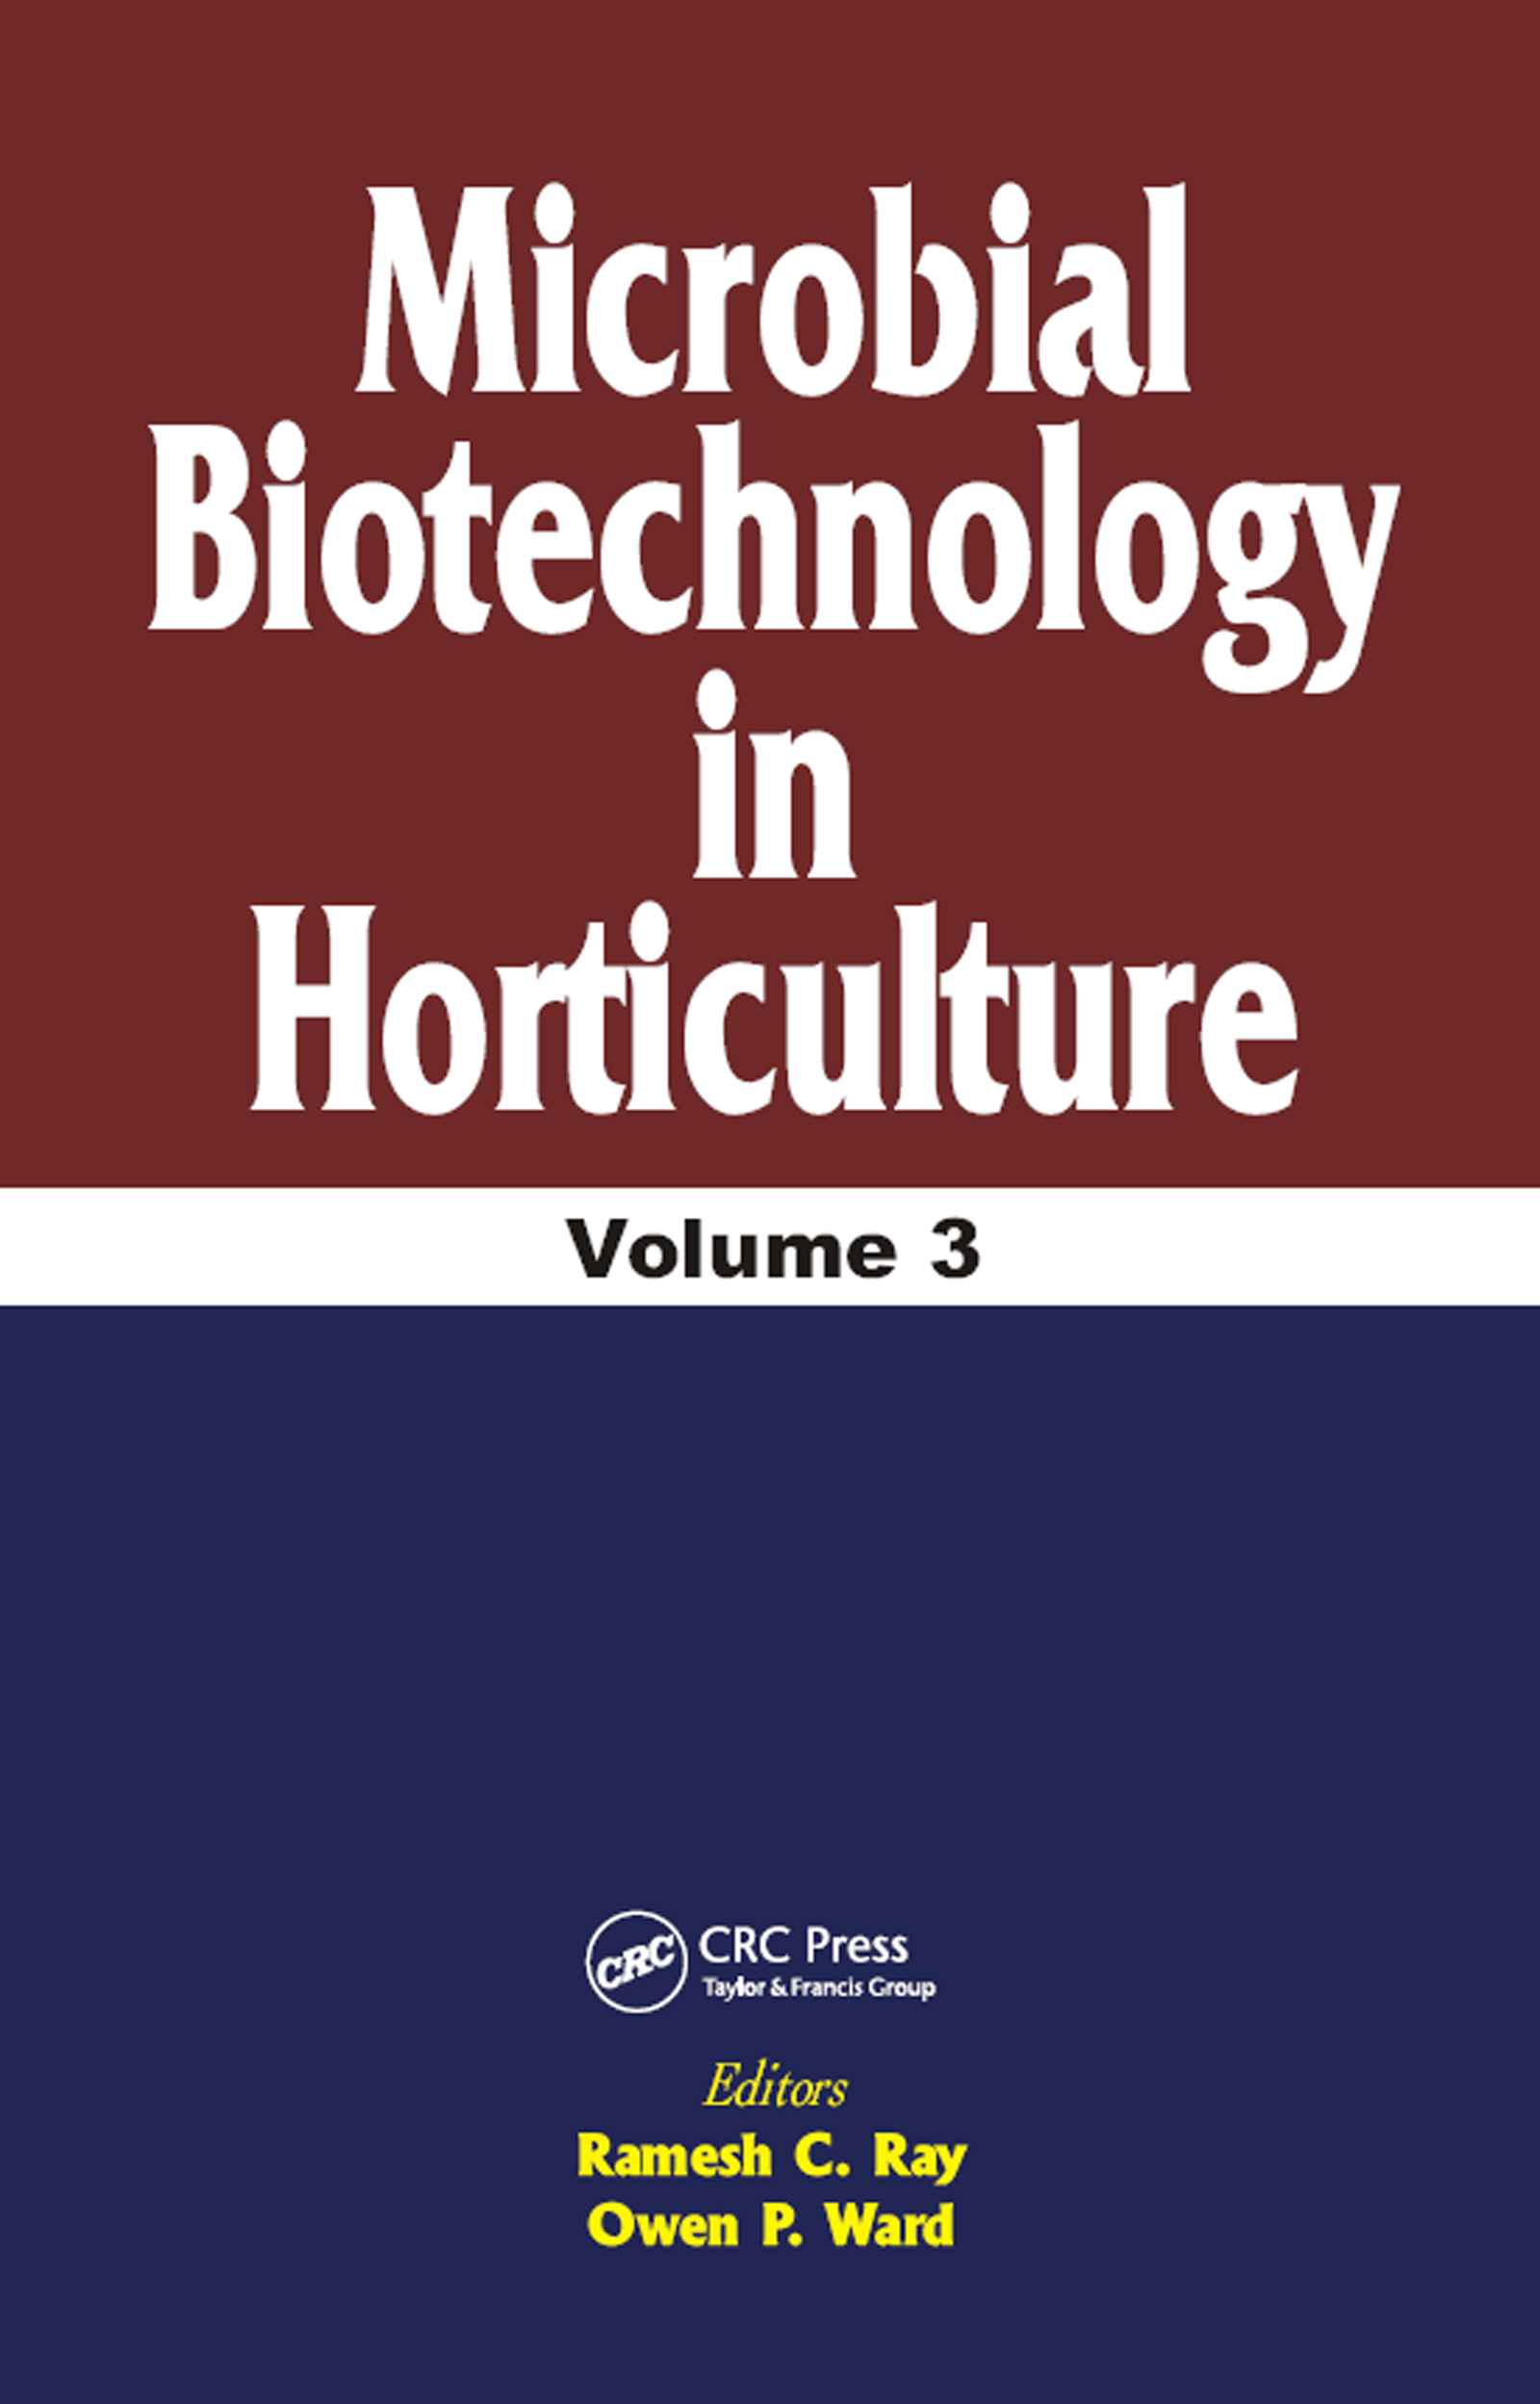 Microbial Biotechnology in Horticulture, Vol. 3: 1st Edition (Hardback) book cover